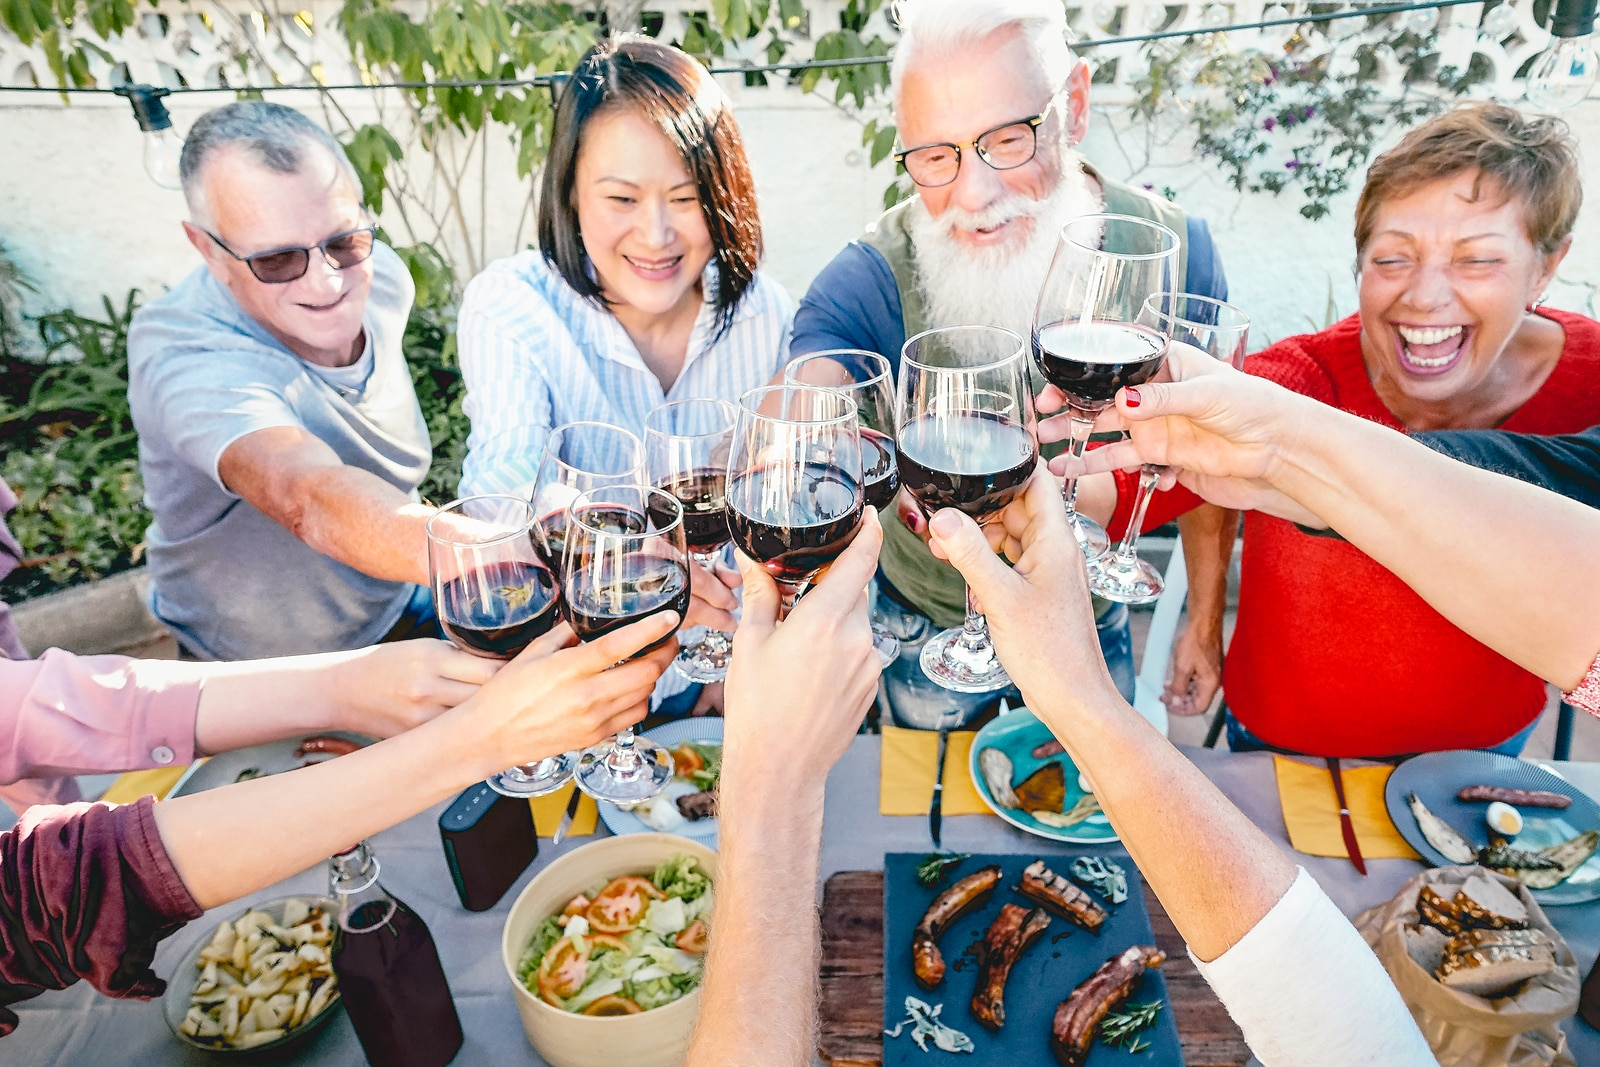 What hormones imbalance causes hot flashes- wine as a trigger